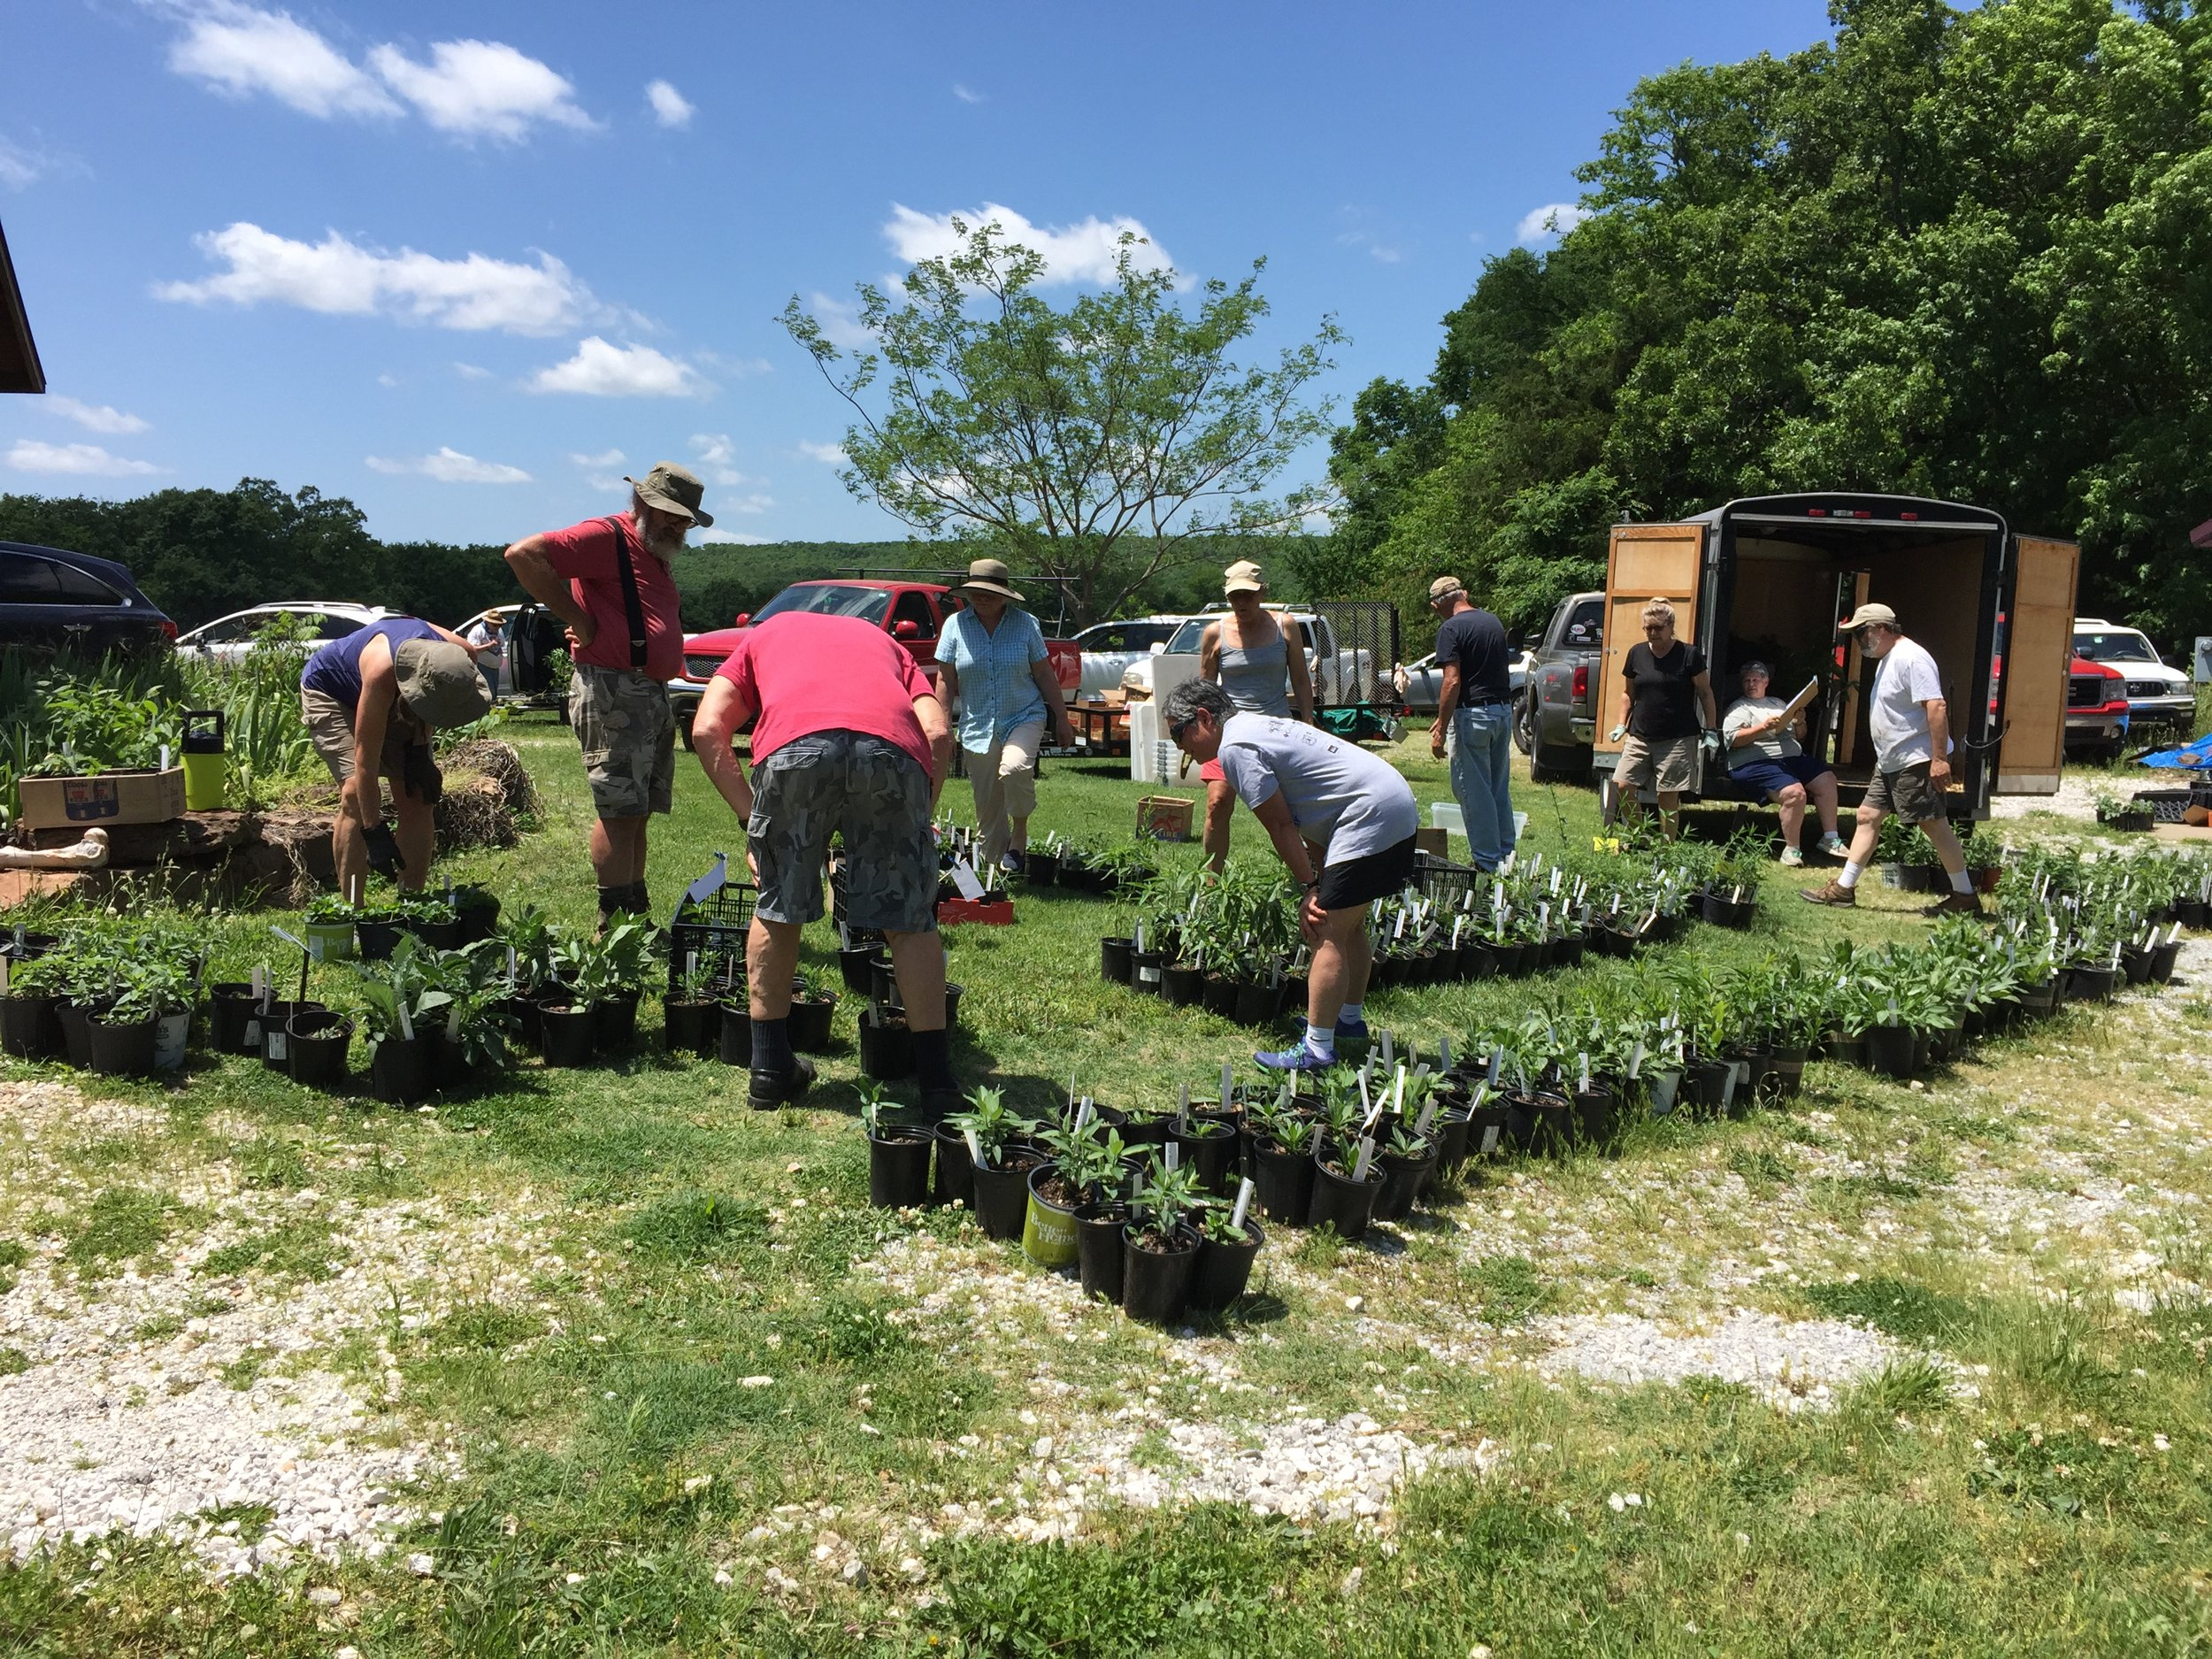 Arkansas Master Naturalists members prepare plant stock for its native plant sale. The group volunteers to clean and preserve wild spaces in Arkansas.  -Photos courtesy of Arkansas Master Naturalists